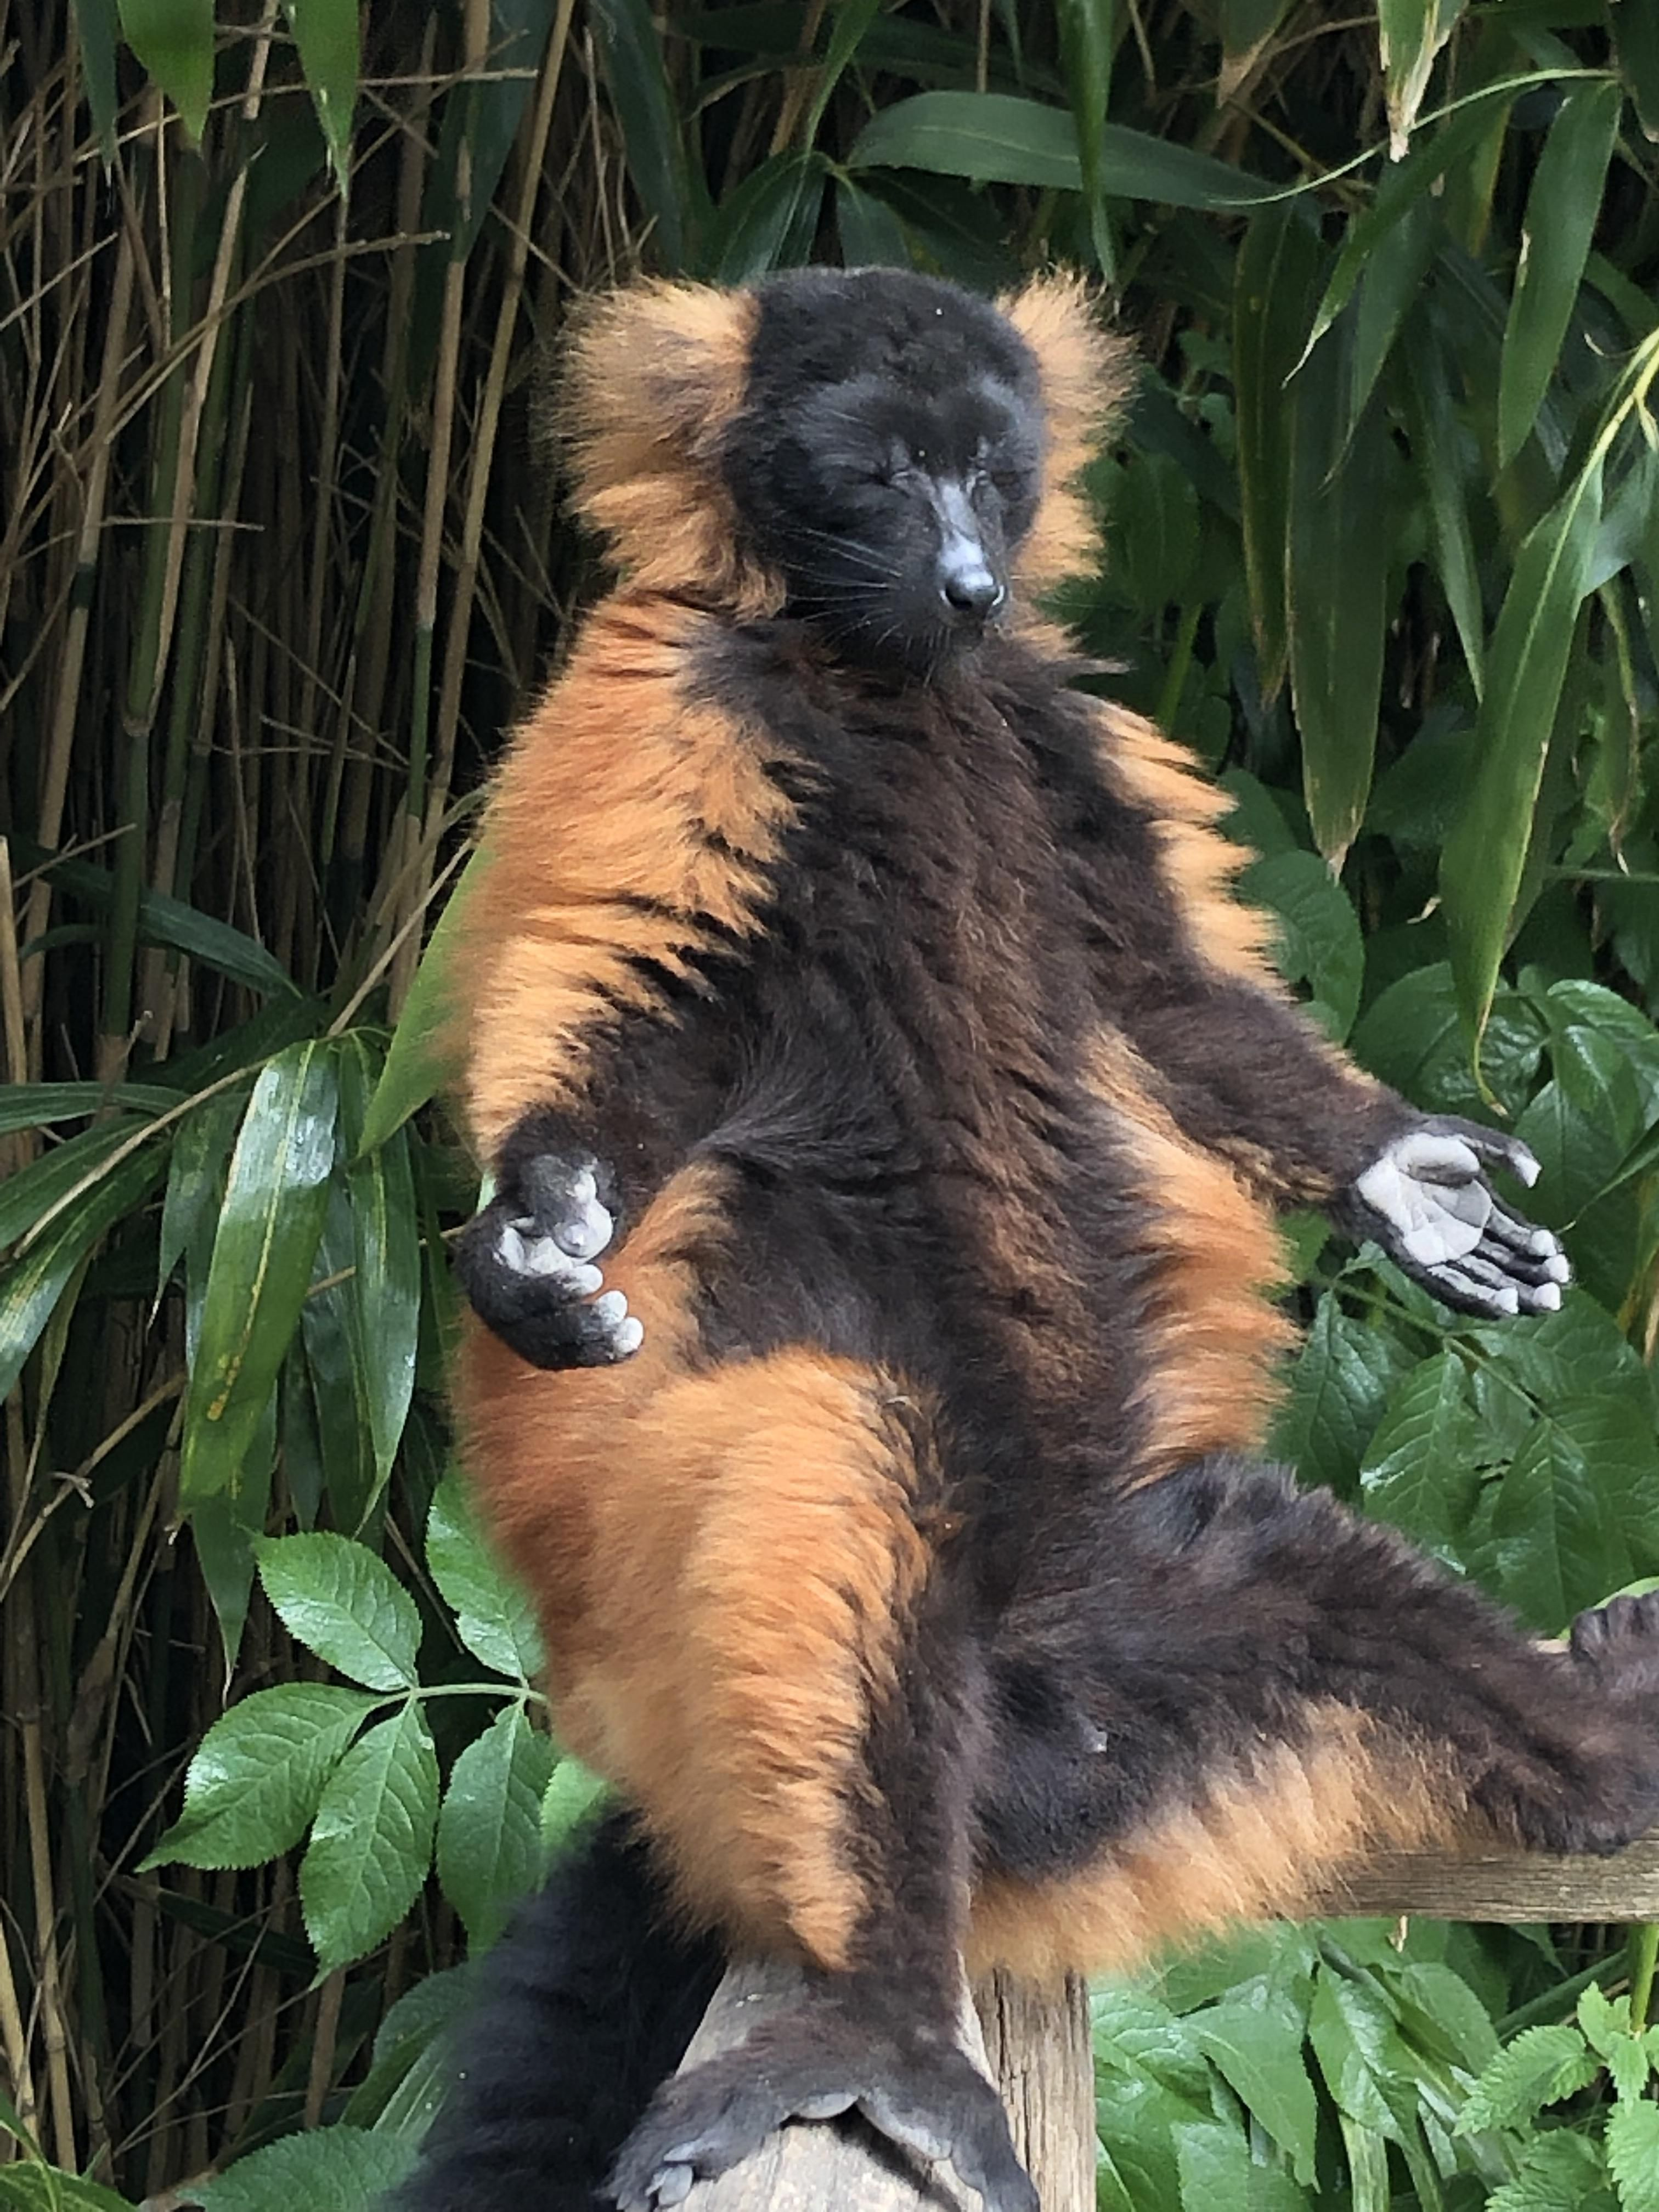 Went to the zoo, found a red ruffed lemur finding his inner peace